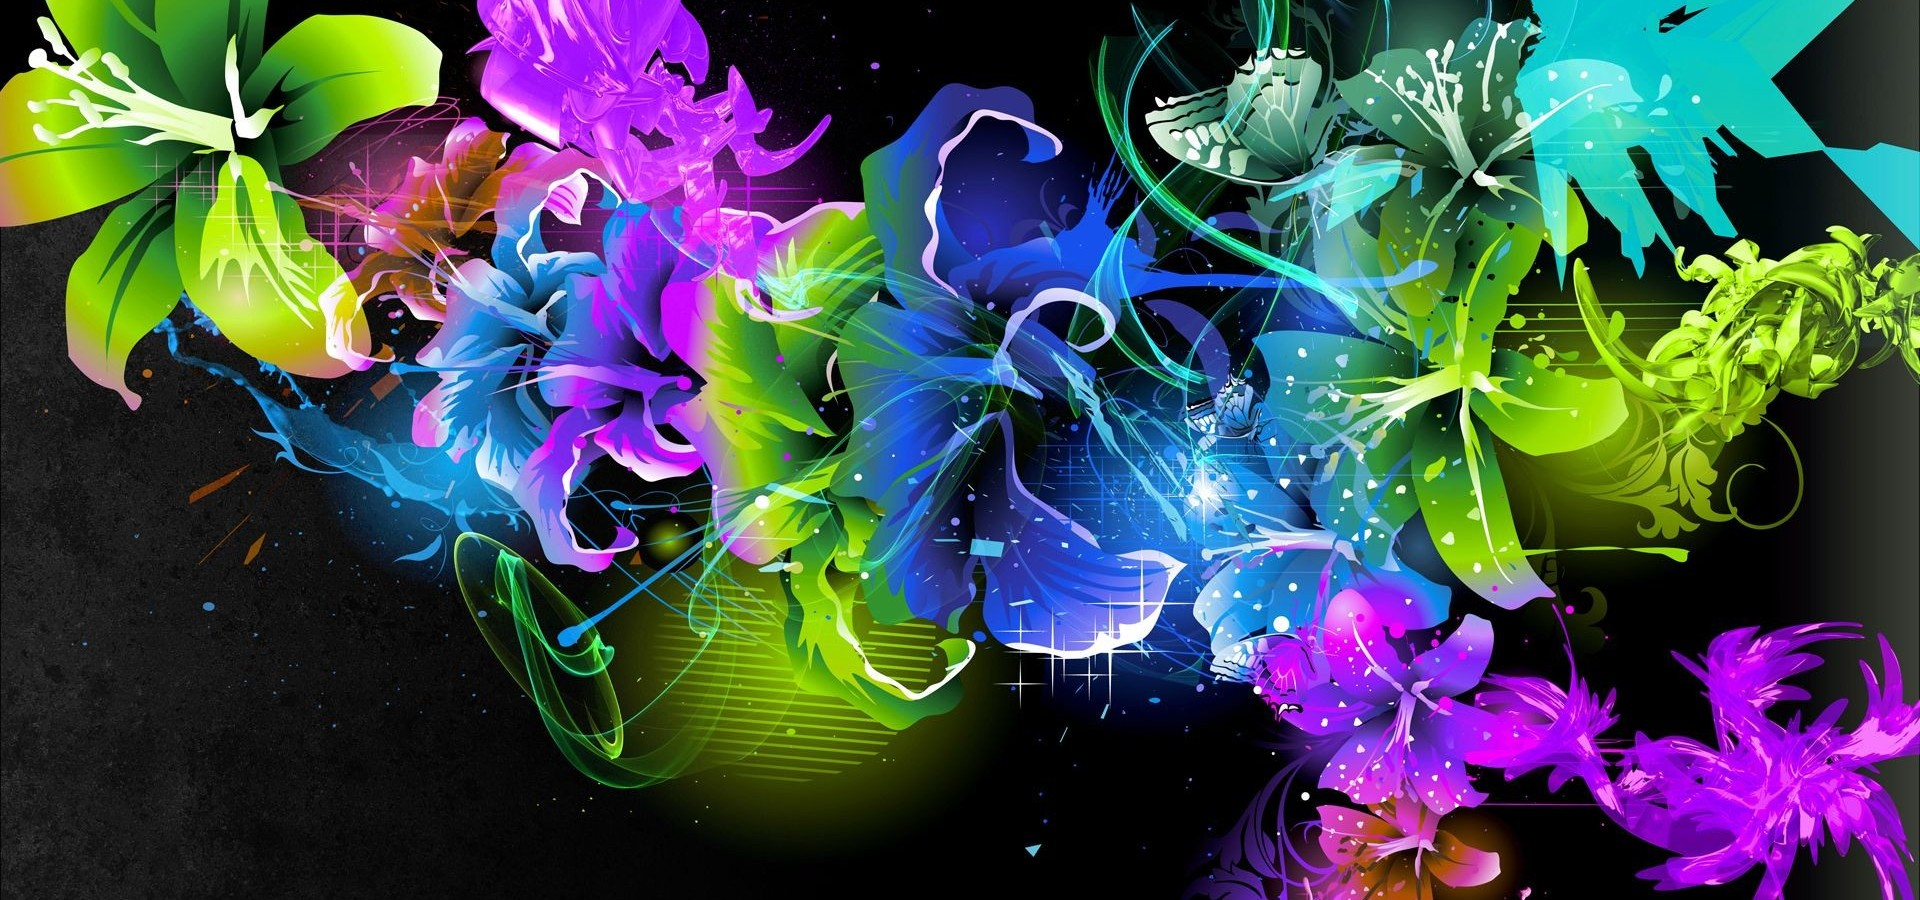 Abstract Anime 720p Anime Wallpaper 1080p Wallpaper